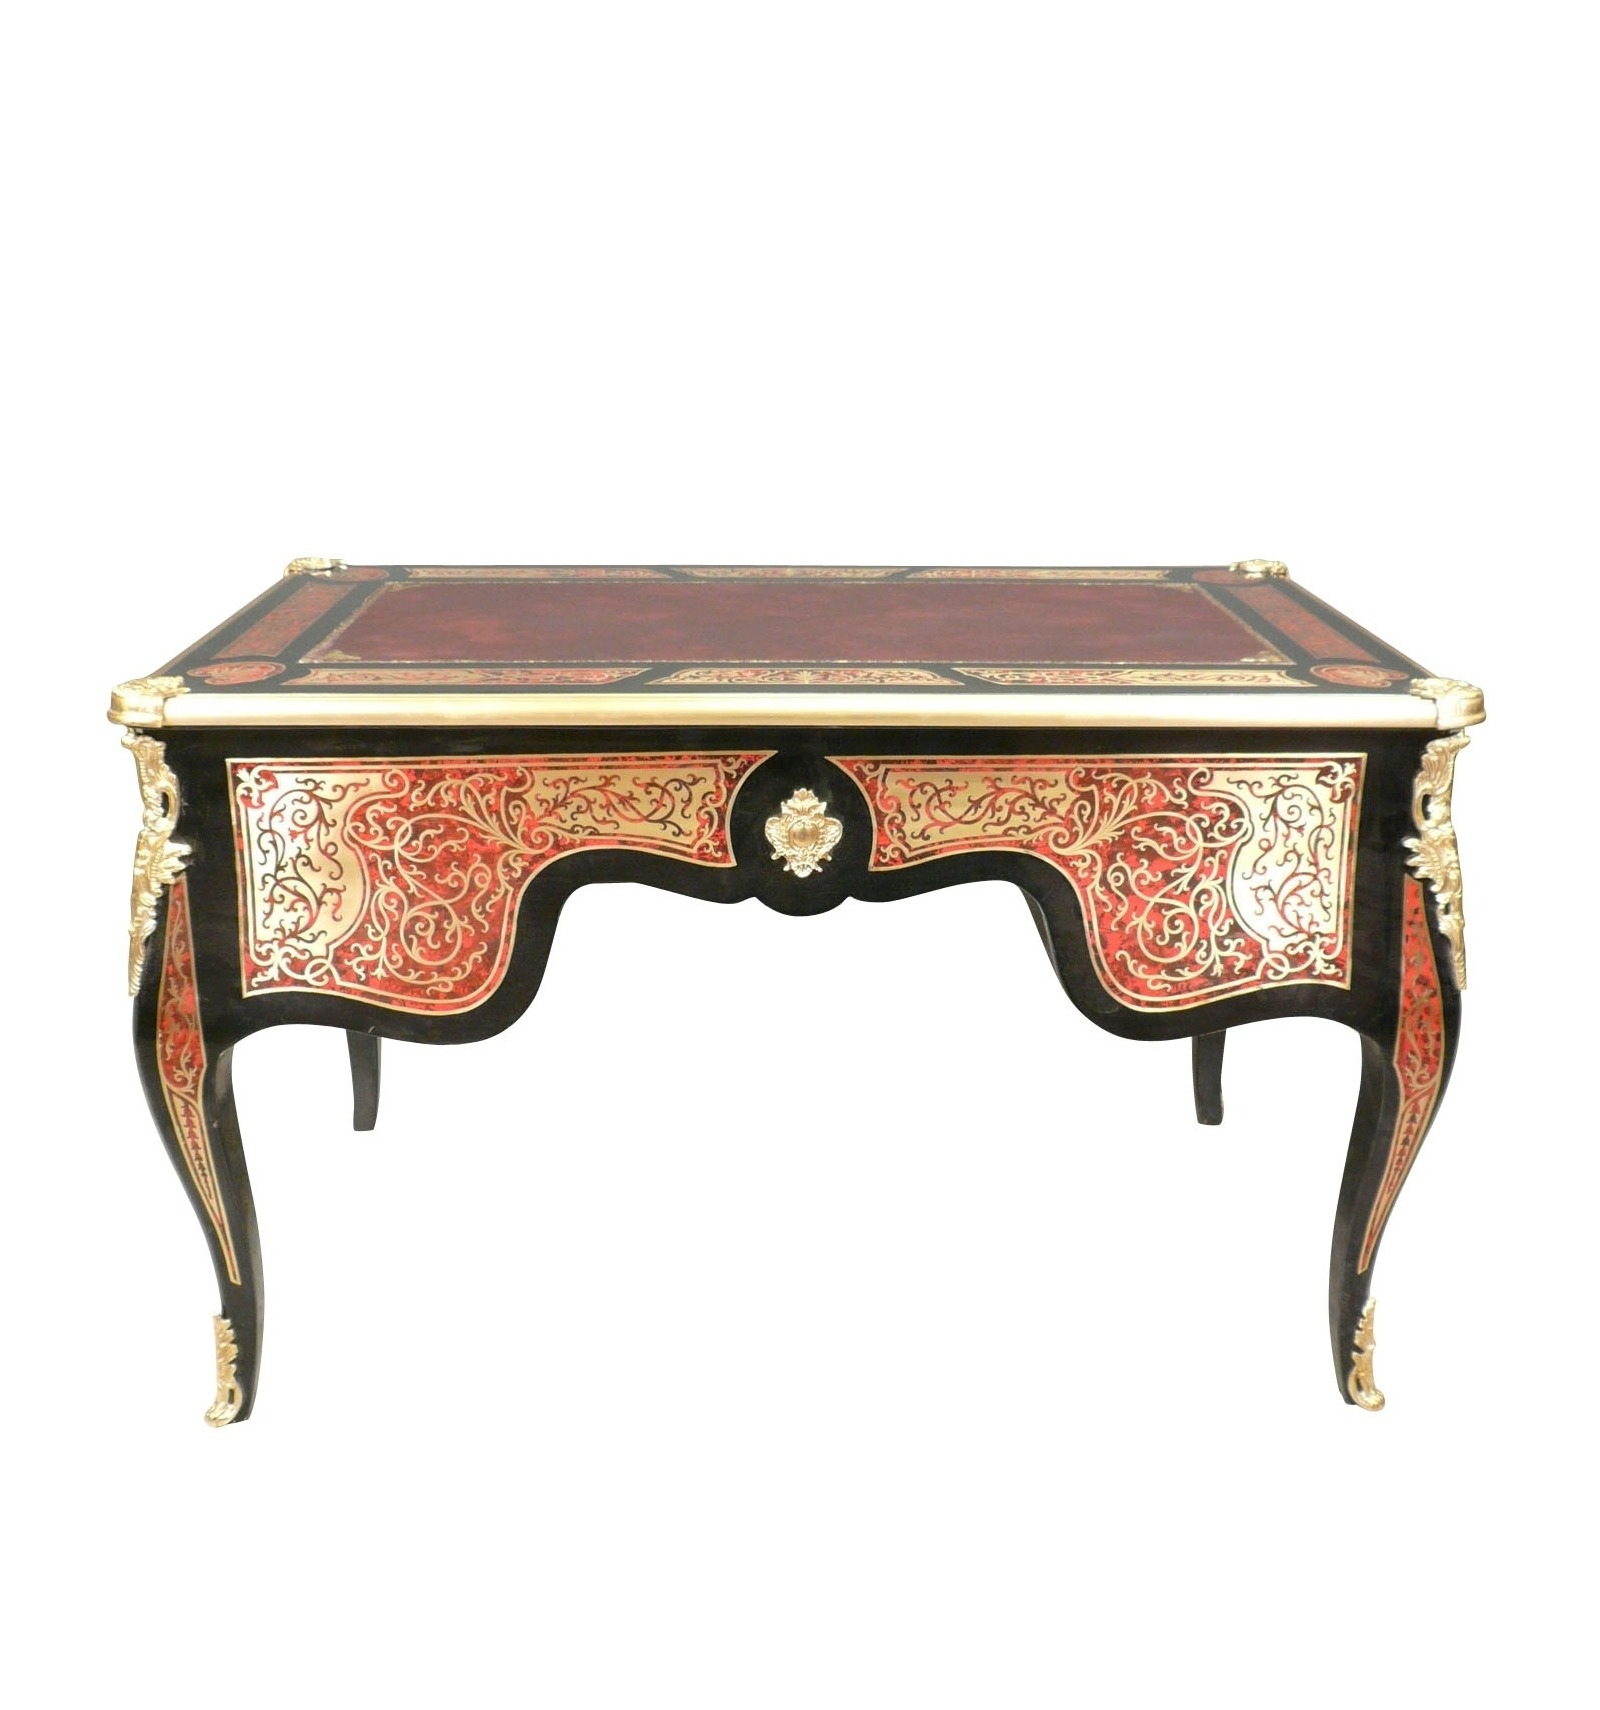 office louis xv marquetry boulle furniture louis xv. Black Bedroom Furniture Sets. Home Design Ideas